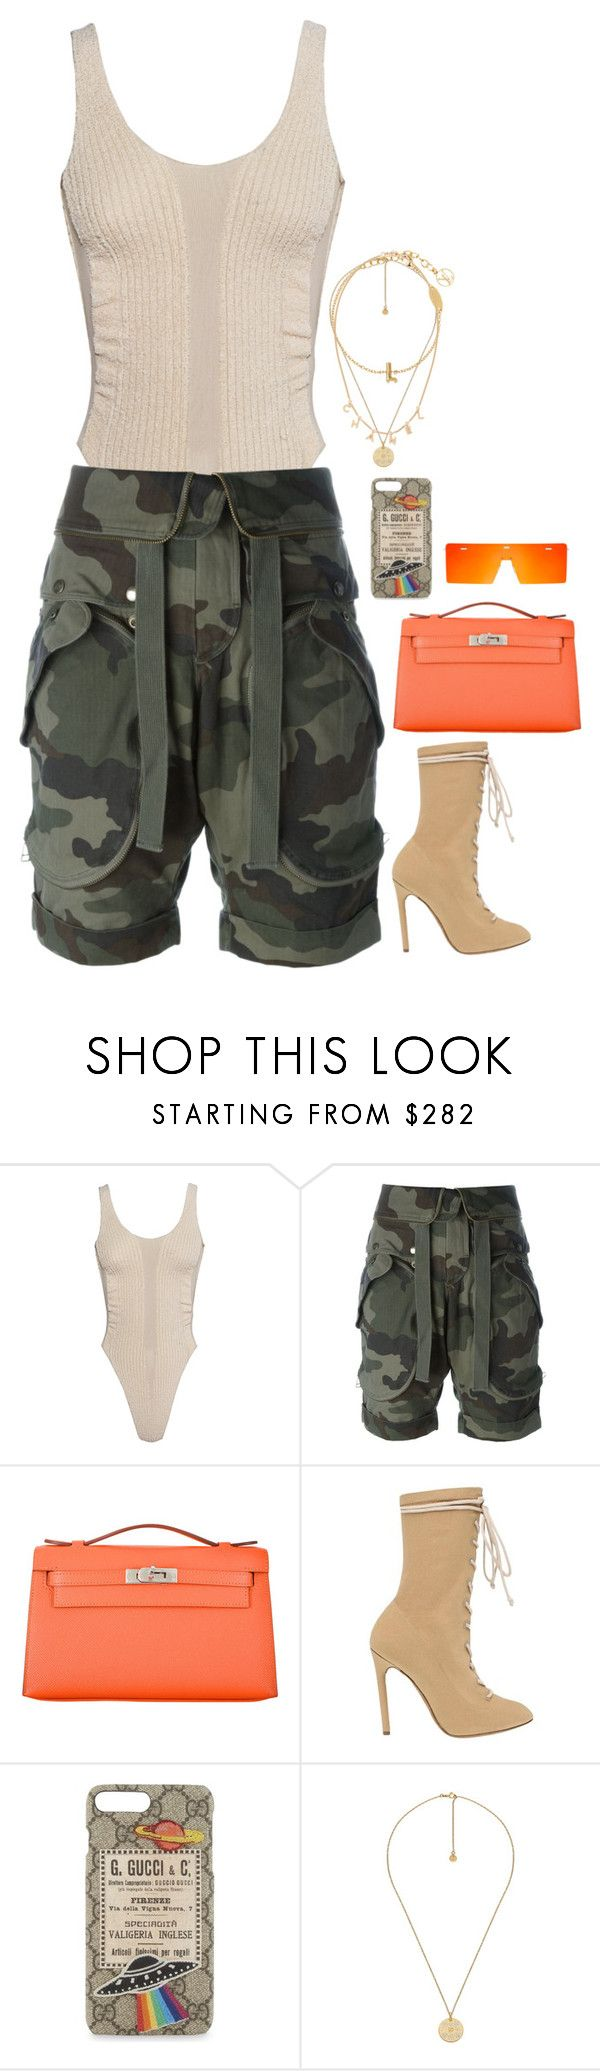 Yeezy shoes and body with orang Hermès bag by hugovrcl on Polyvore featuring Faith Connexion, Yeezy by Kanye West, Hermès and Gucci